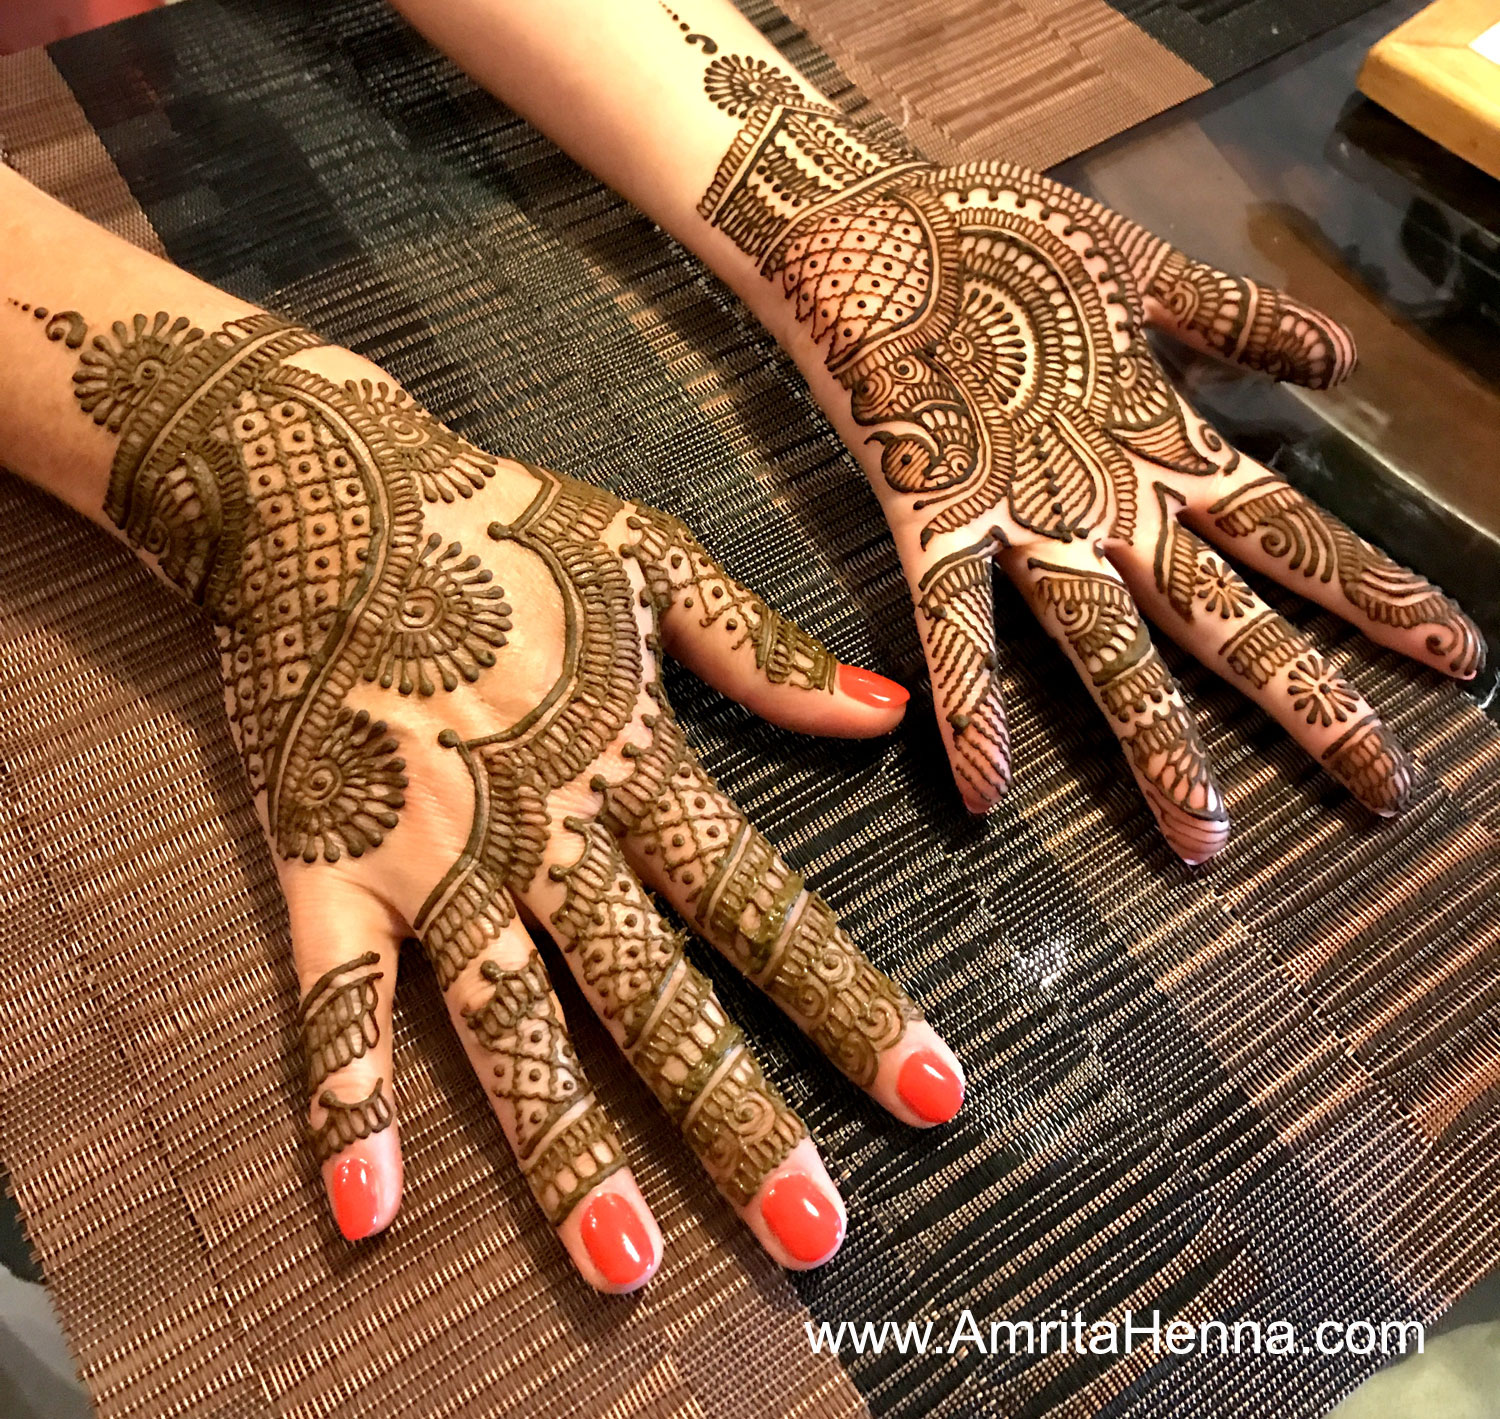 TOP 10 EID HENNA DESIGNS - 10 BEST MEHNDI DESIGNS FOR EID - TOP 10 STUNNING RAMADAN MEHENDI DESIGNS -  10 MUST TRY EID HENNA DESIGNS - 10 MOST POPULAR EID MEHANDI DESIGNS - EID MUBARAK HENNA DESIGNS - SPECIAL RAMADAN MEHNDI DESIGNS - DONT MISS THESE 10 UNIQUE EID HENNA DESIGNS